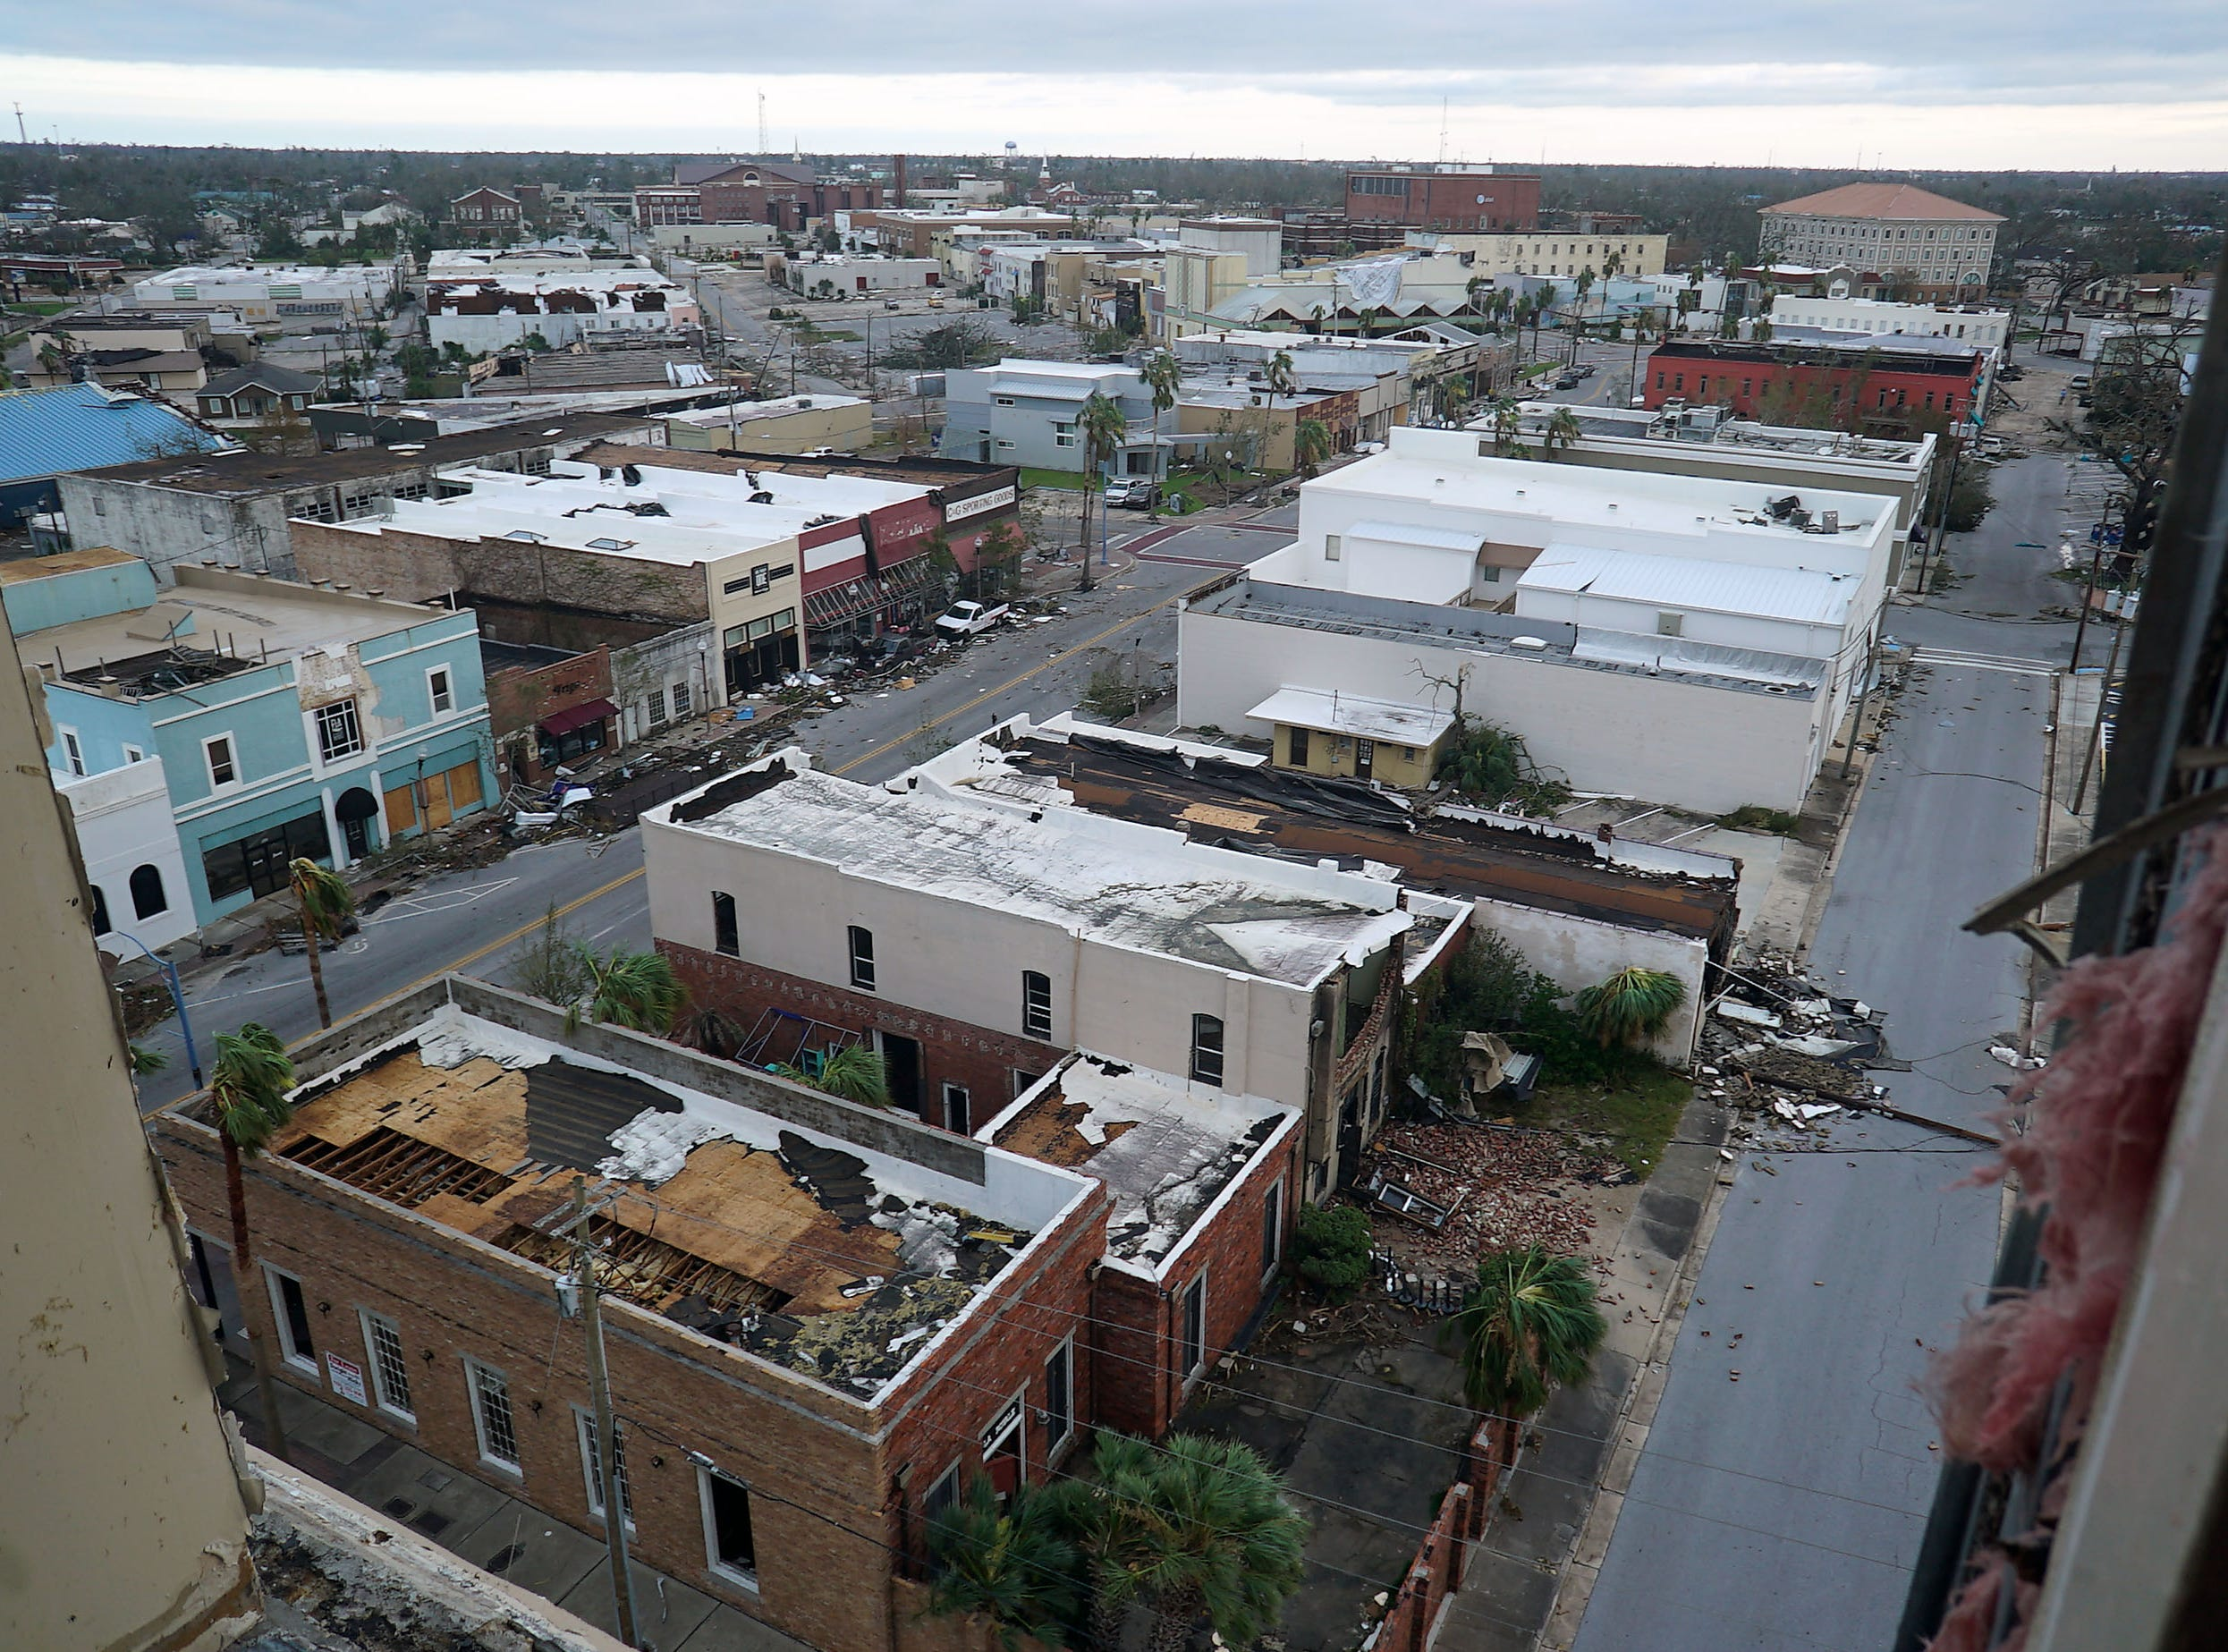 A view of Panama City from the St. Andrews apartment building, which suffered significant damage during the passage of Hurricane Michael.